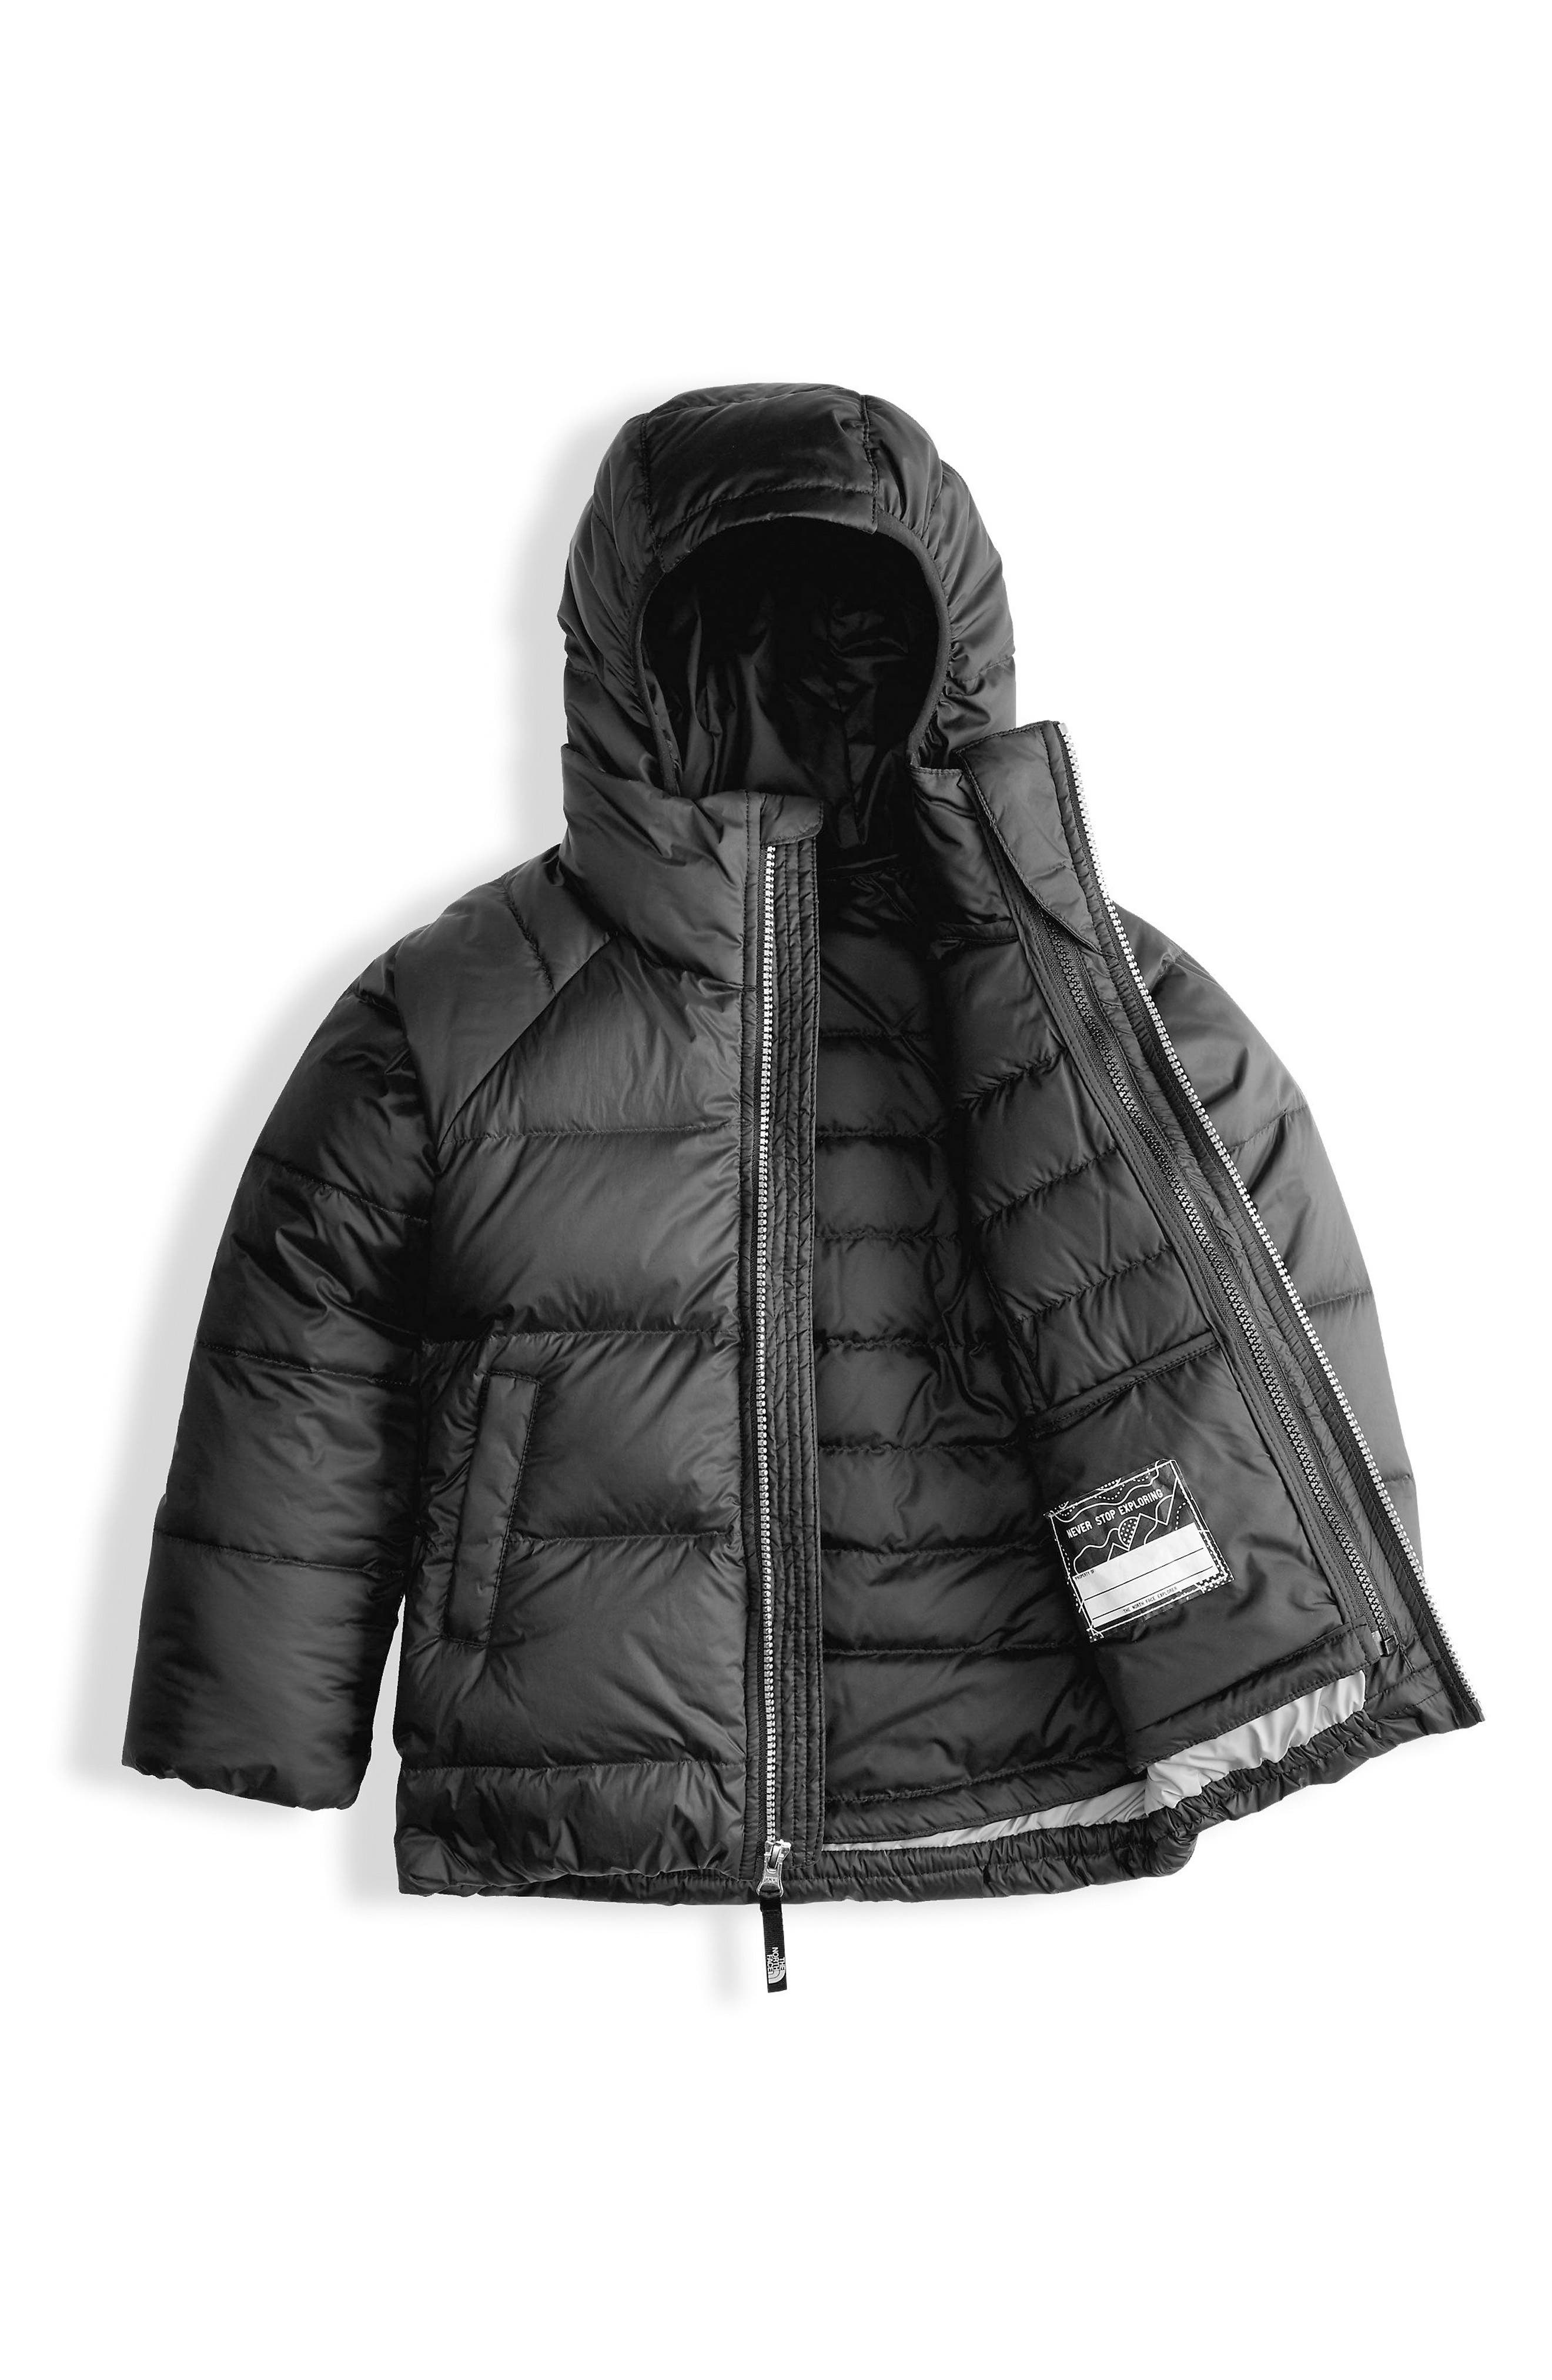 Double Down TriClimate<sup>®</sup> 3-in-1 Jacket,                             Alternate thumbnail 3, color,                             Tnf Black